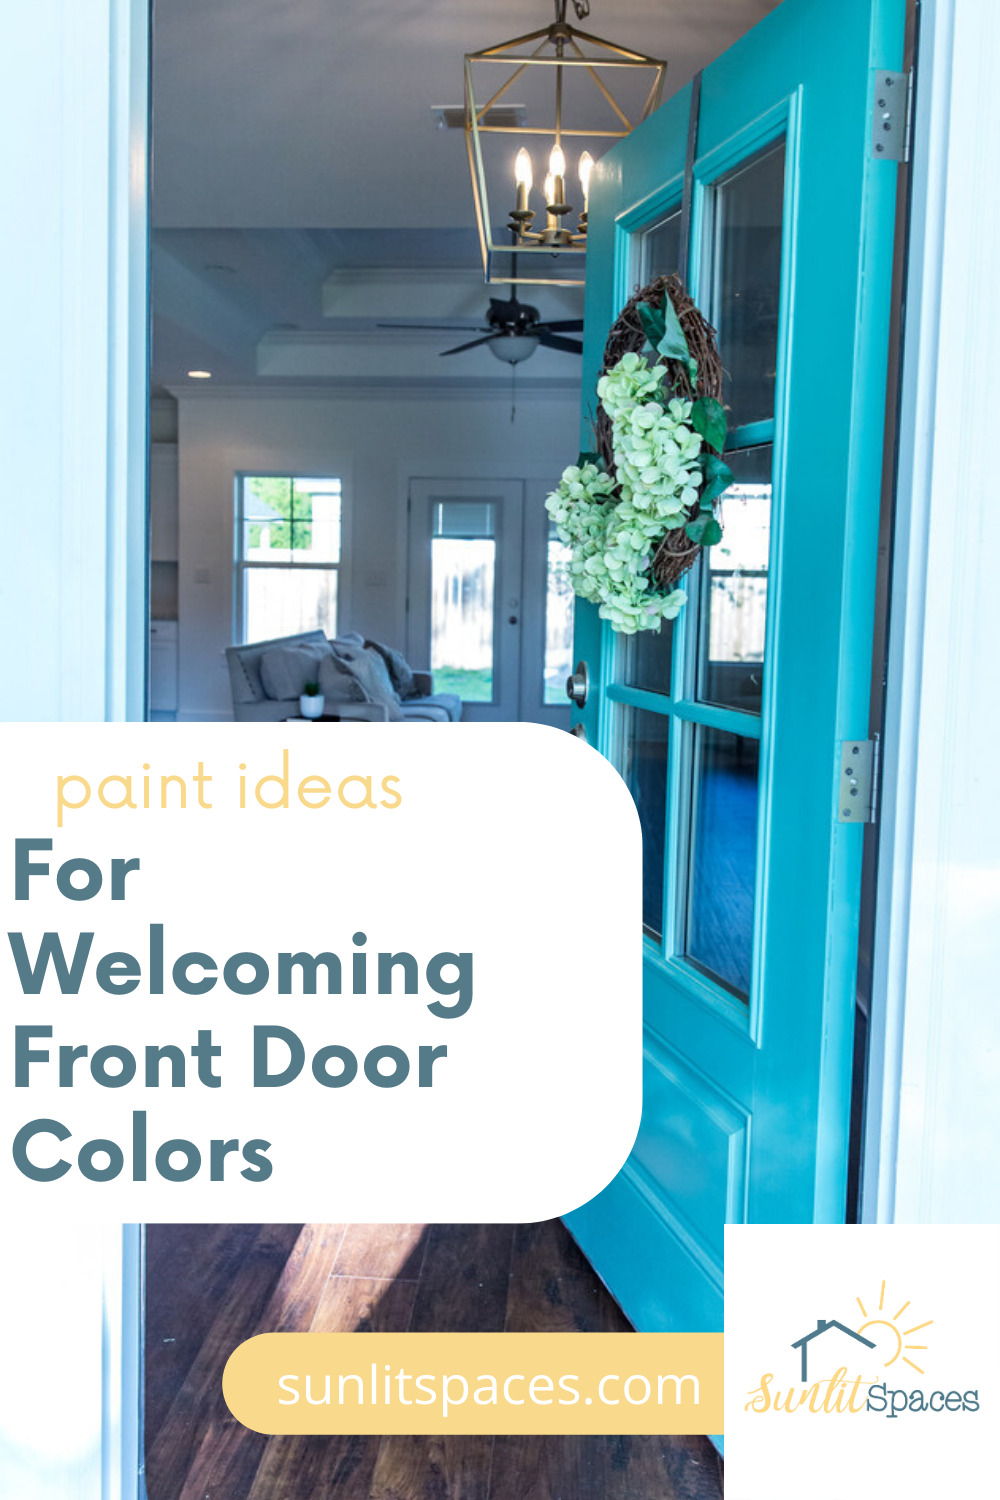 7 Welcoming front doors you can't miss. Give your entire front exterior a facelift with a new paint color for your front door! This guide will help you choose the most welcoming color for your home. #sunlitspacesblog #welcomingfrontdoorcolors